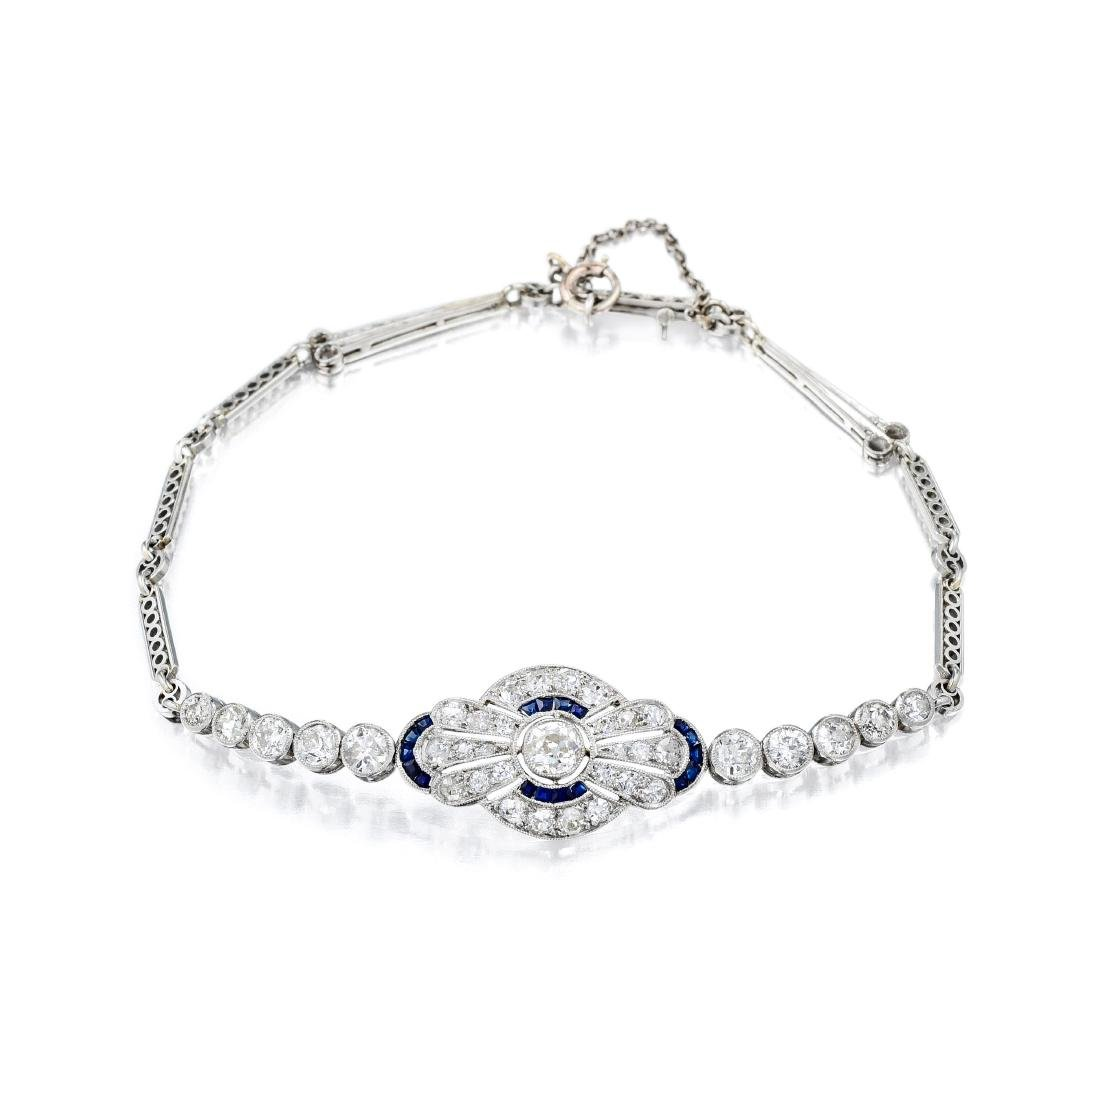 An Art Deco Platinum Diamond and Sapphire Bracelet